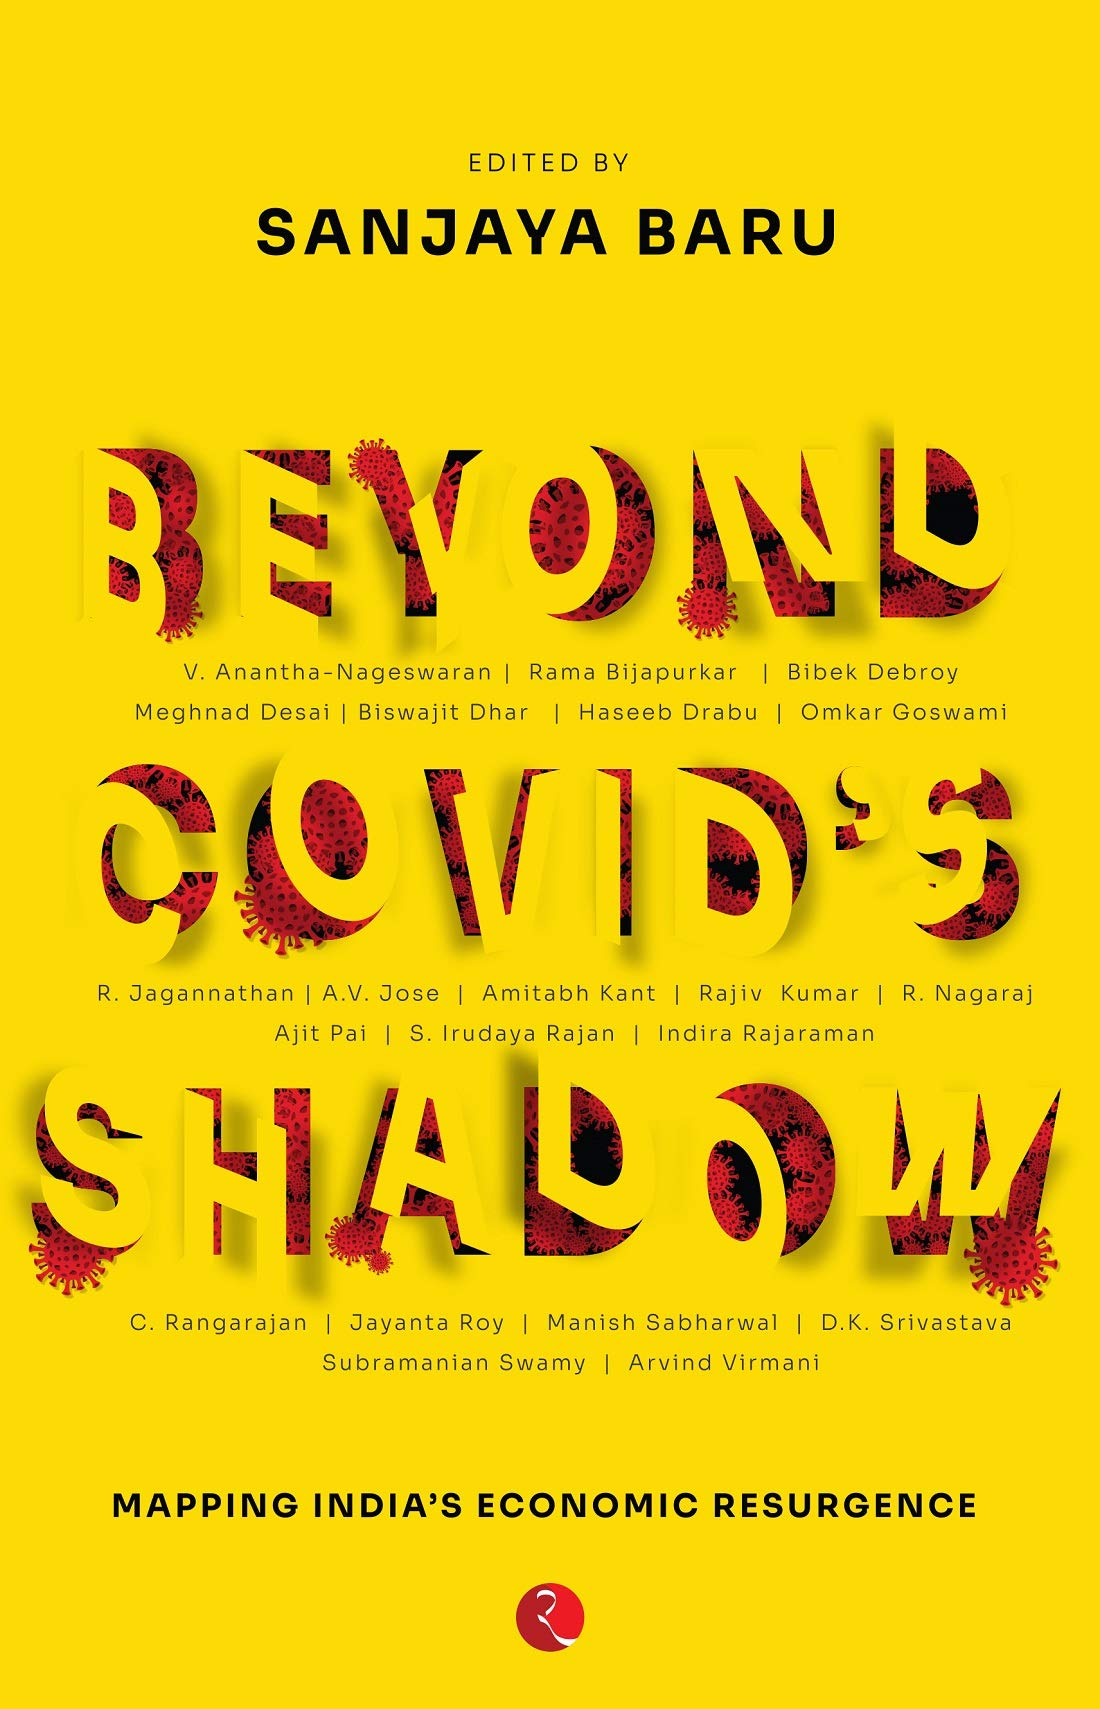 BEYOND COVID'S SHADOW: MAPPING INDIA'S ECONOMIC RESURGENCE